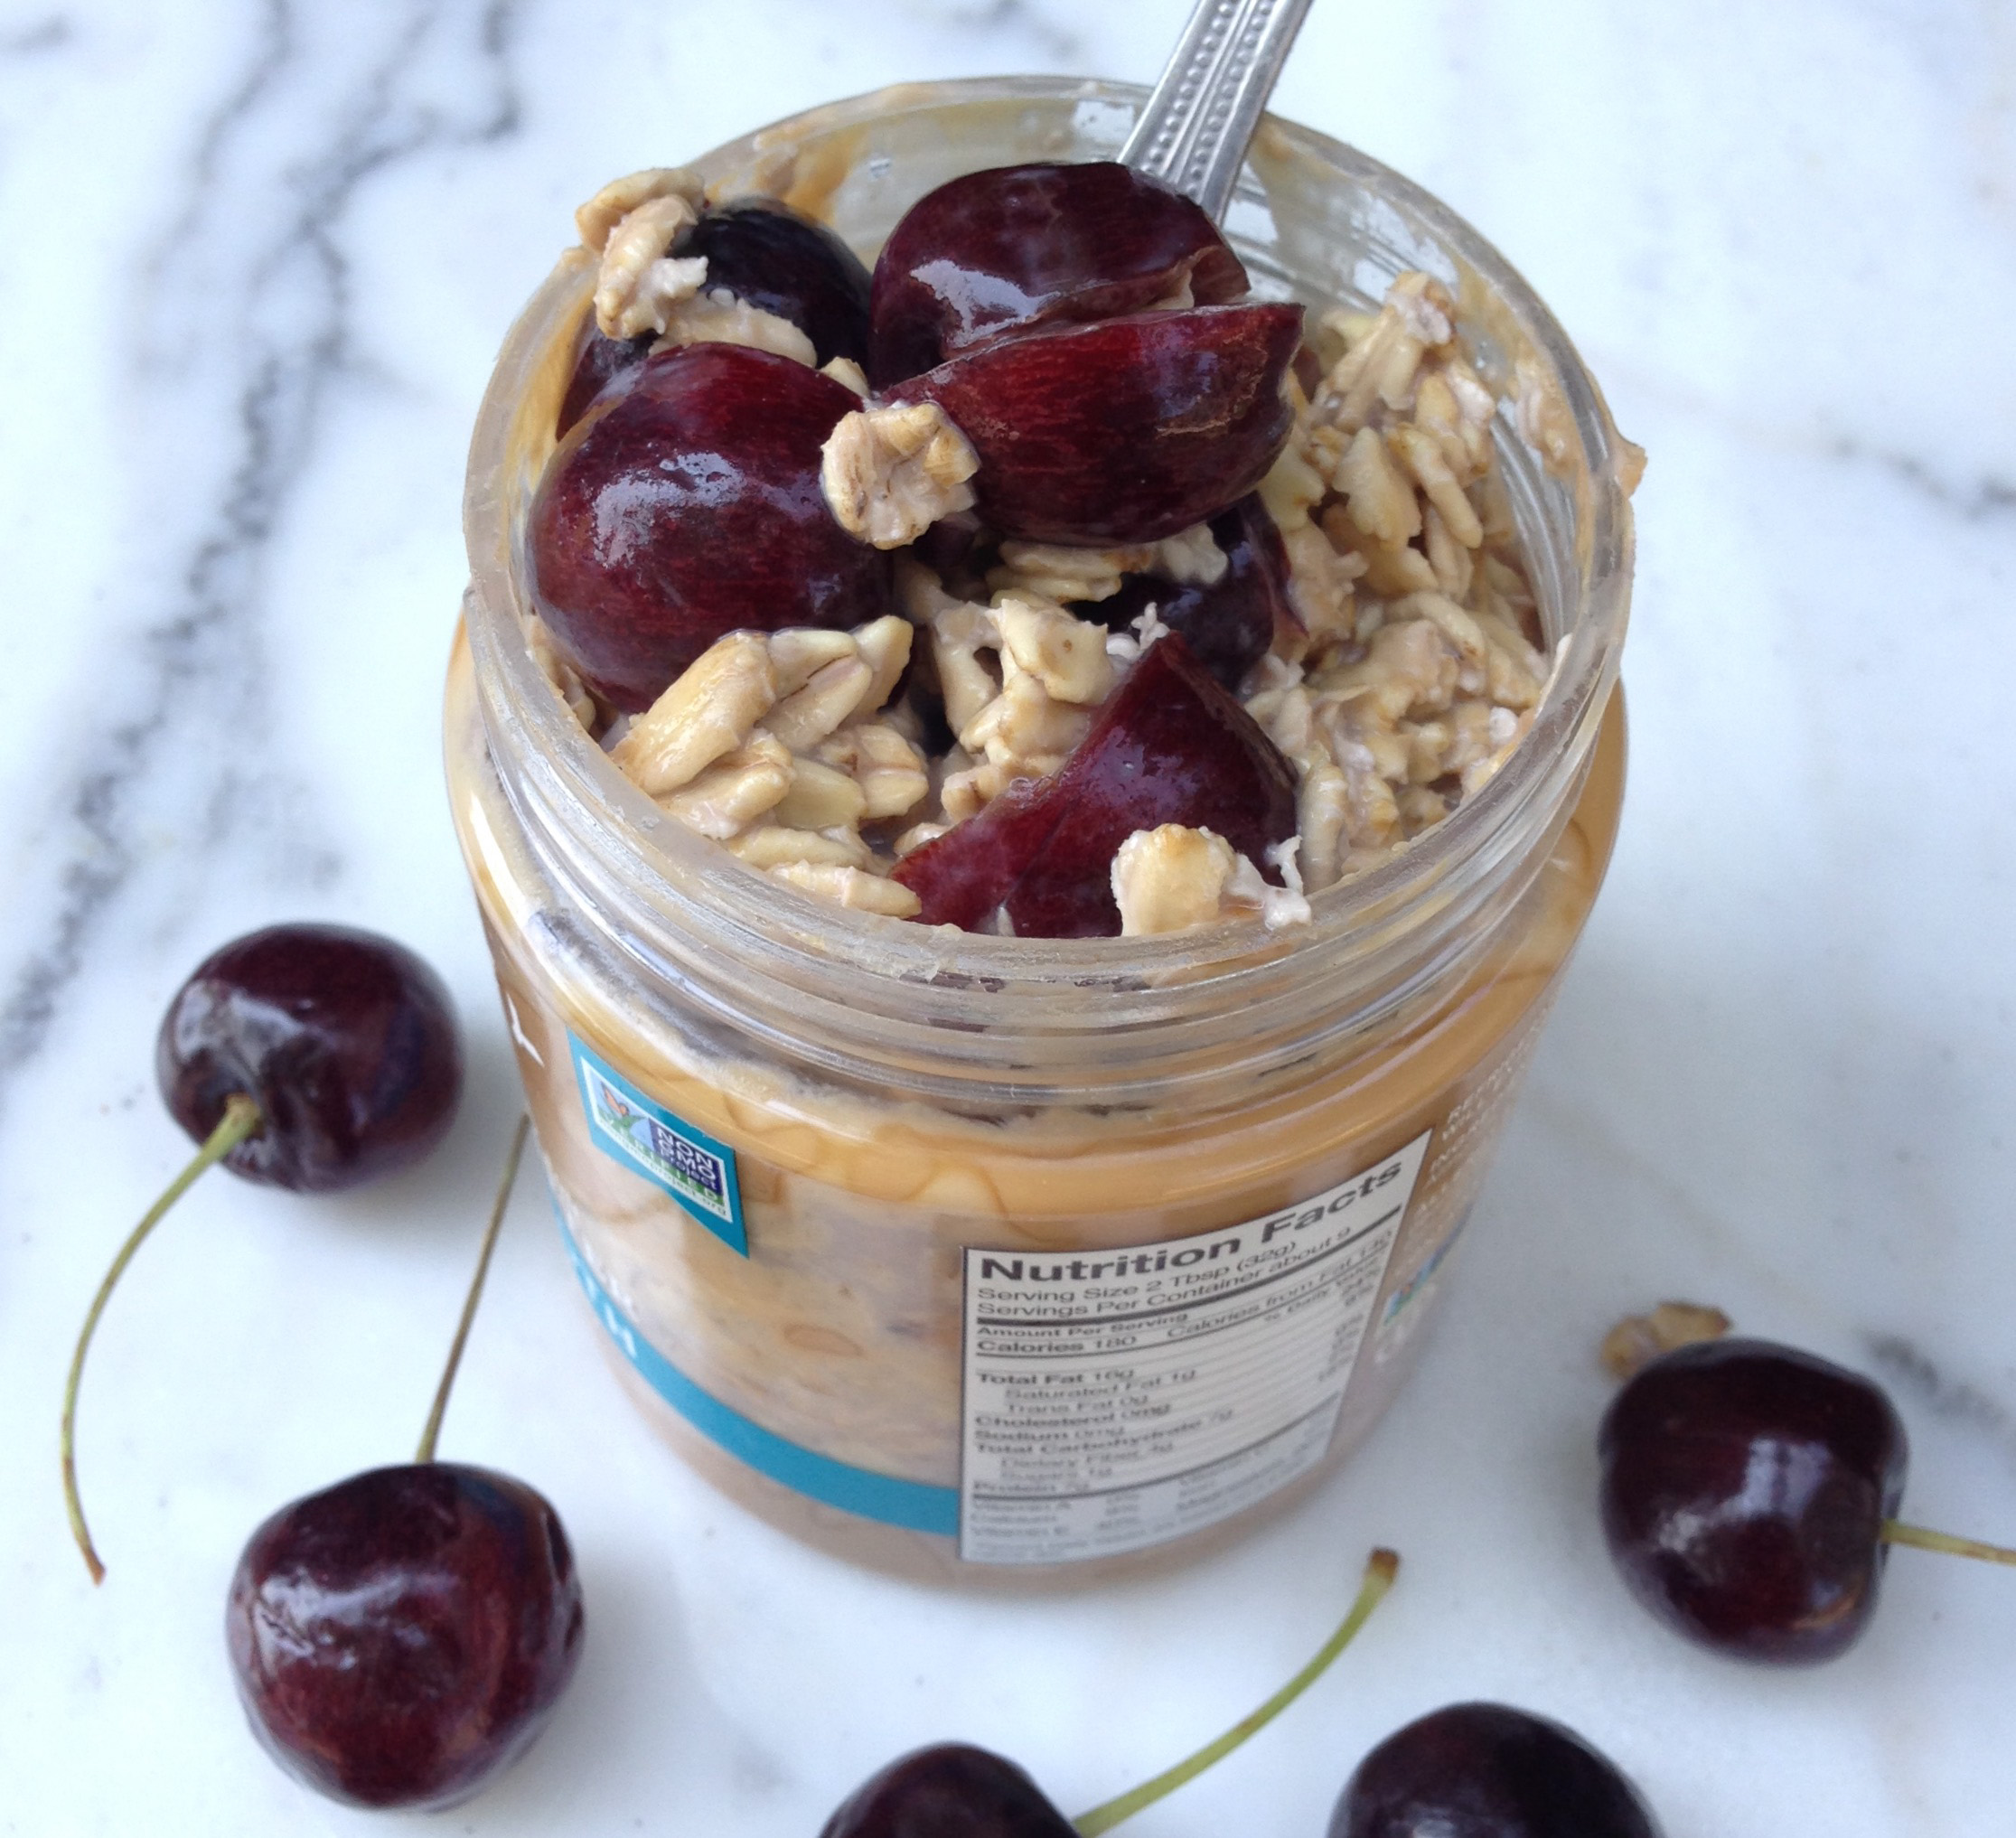 Start your morning right with these Overnight oats! This gluten free, diary free breakfast is filled with chocolate almond milk, almond butter, and fresh cherries!